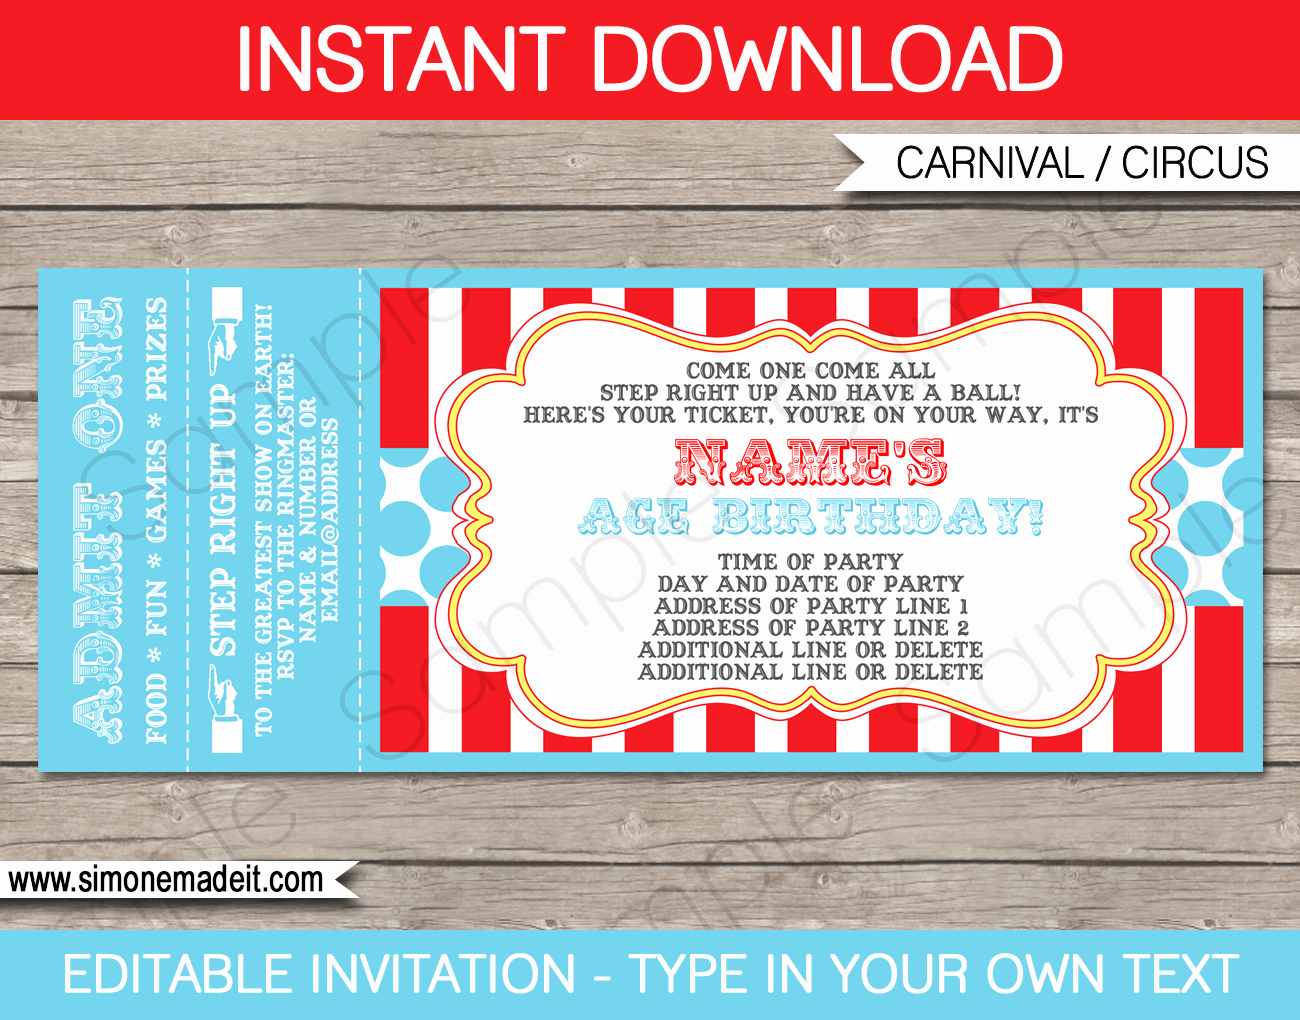 Carnival Ticket Invitations Luxury Circus Party Ticket Invitation Template